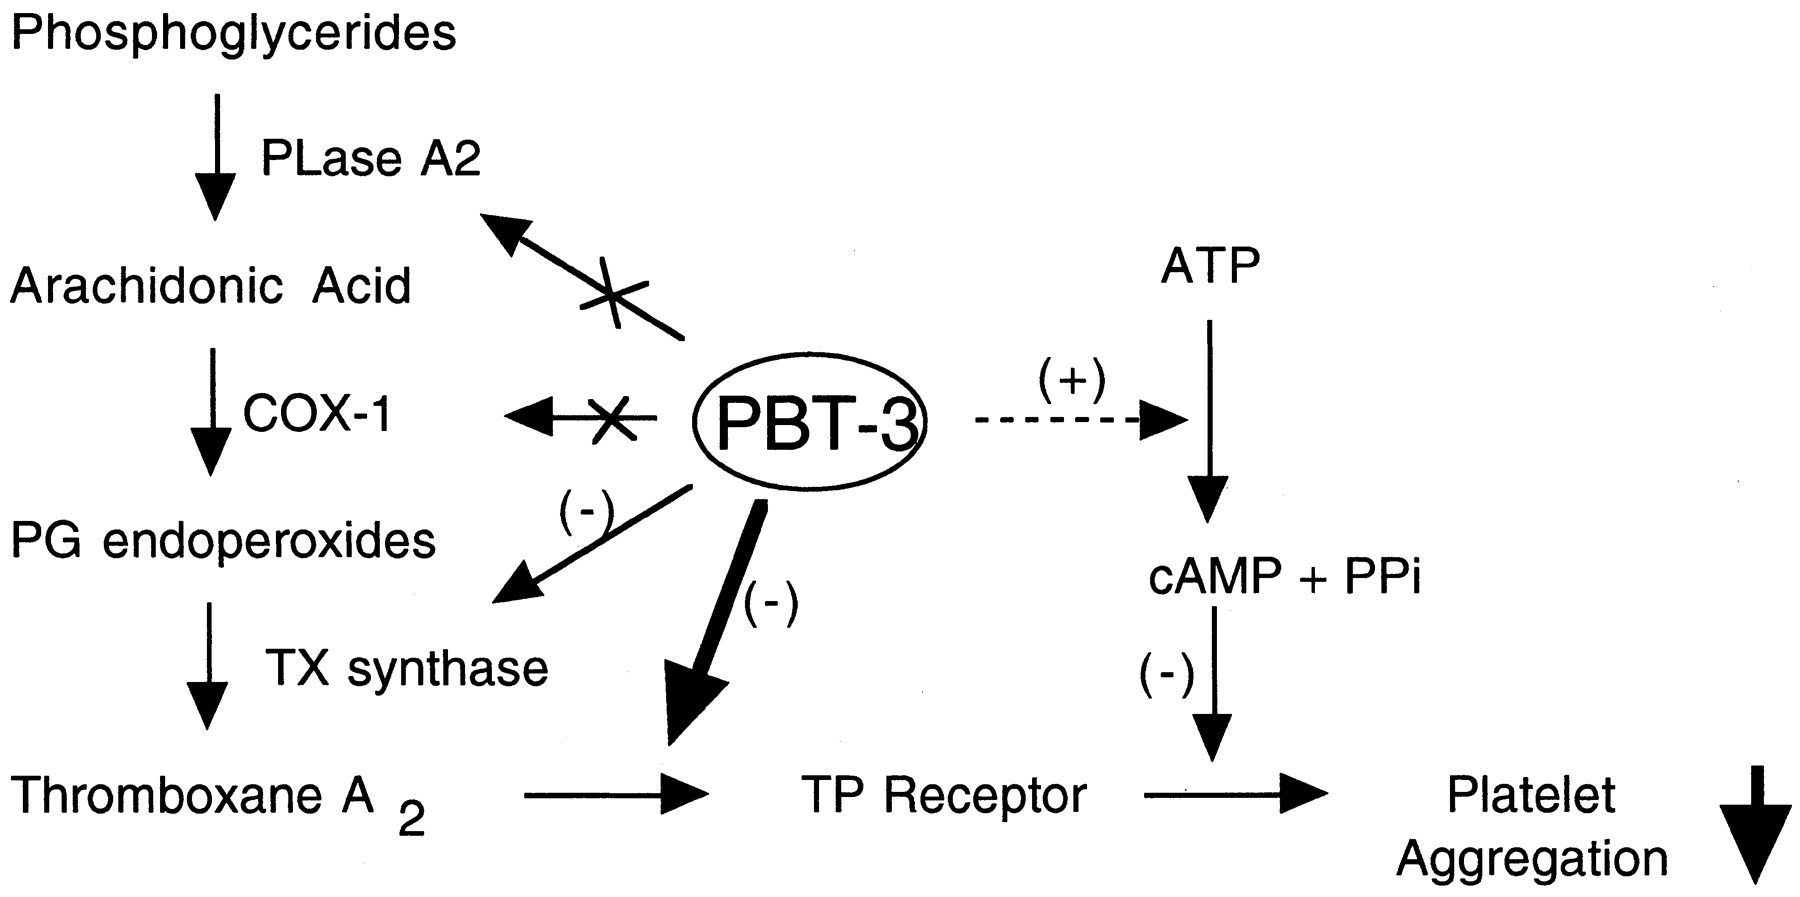 A New Family Of Thromboxane Receptor Antagonists With Secondary Thromboxane Synthase Inhibition